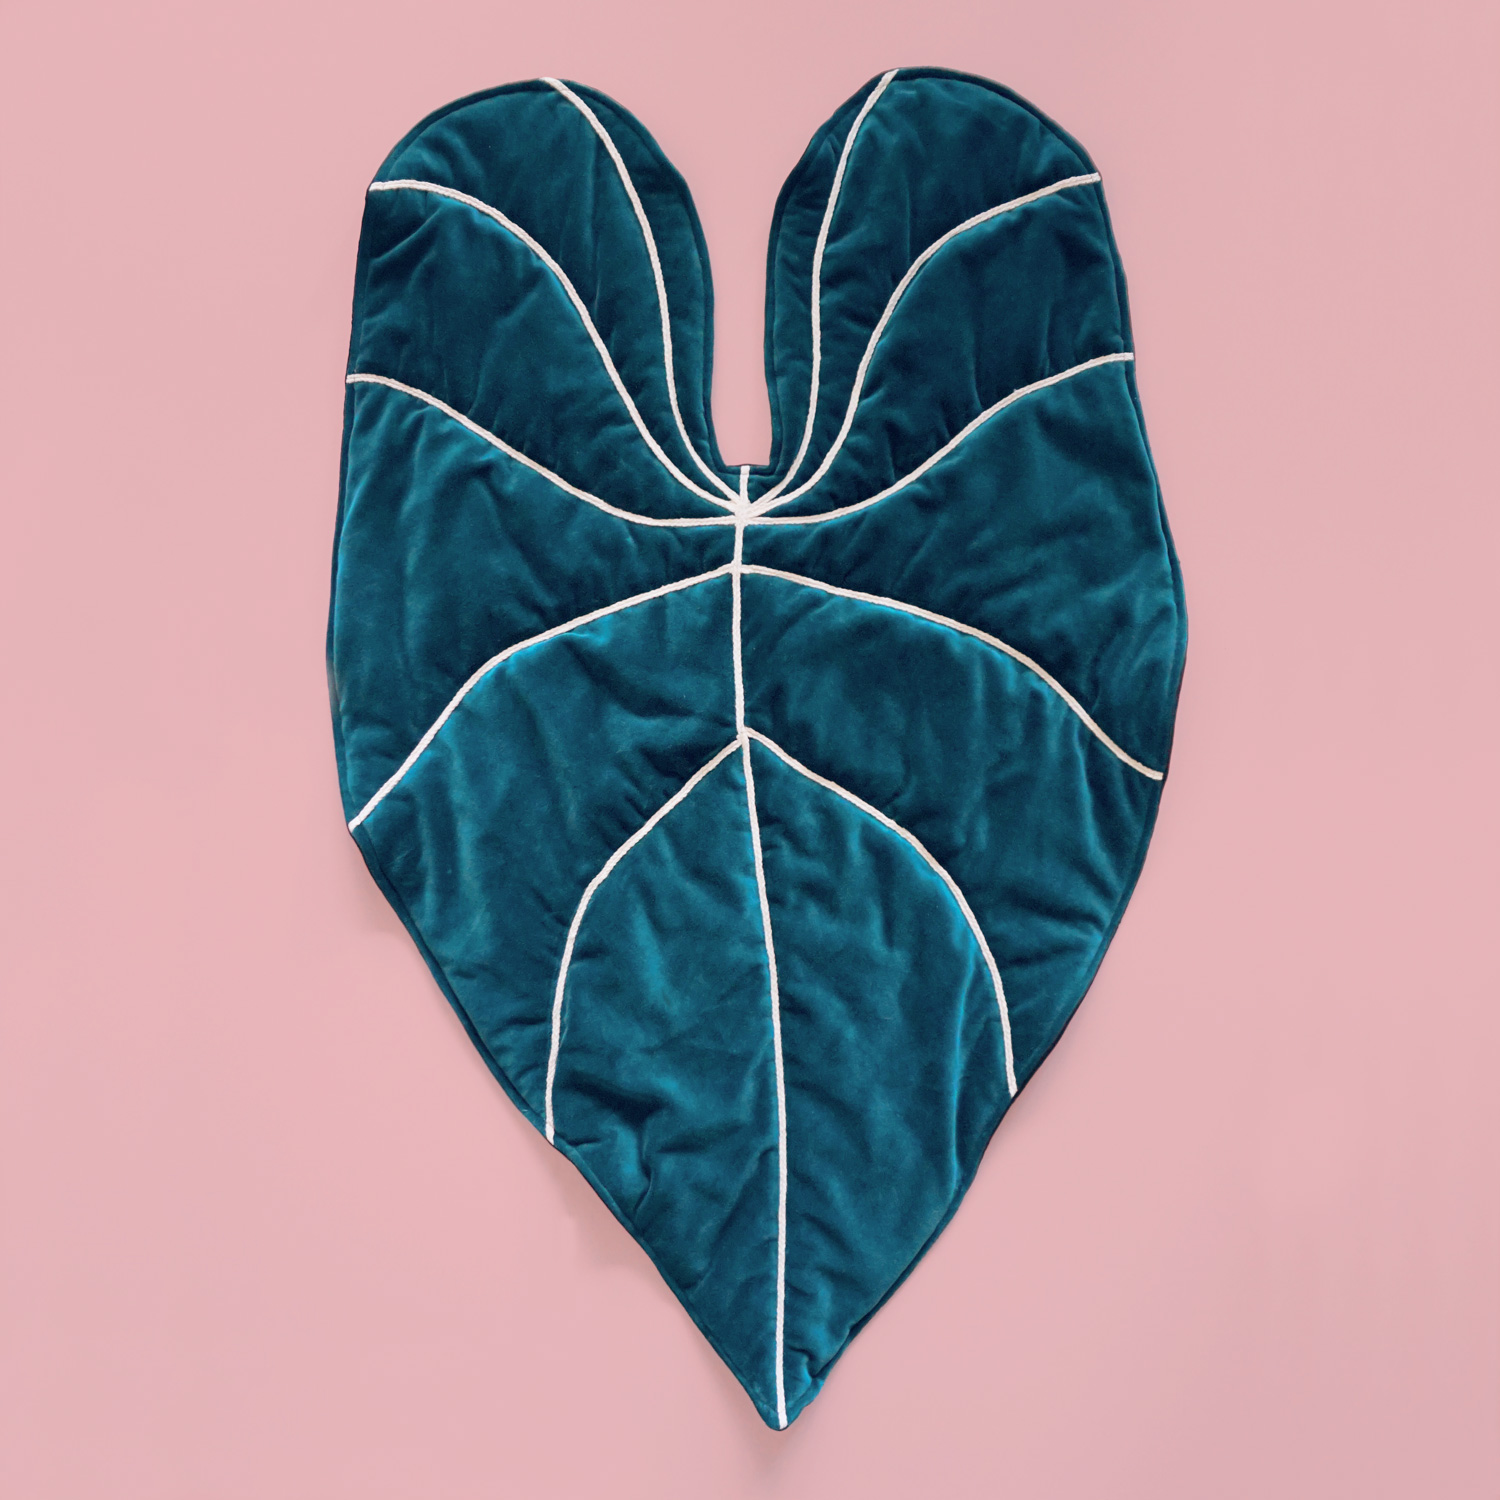 A velvety soft quilted mat in the shape of an alocasia leaf. Perfect as a baby play mat or base for a cozy reading nook.